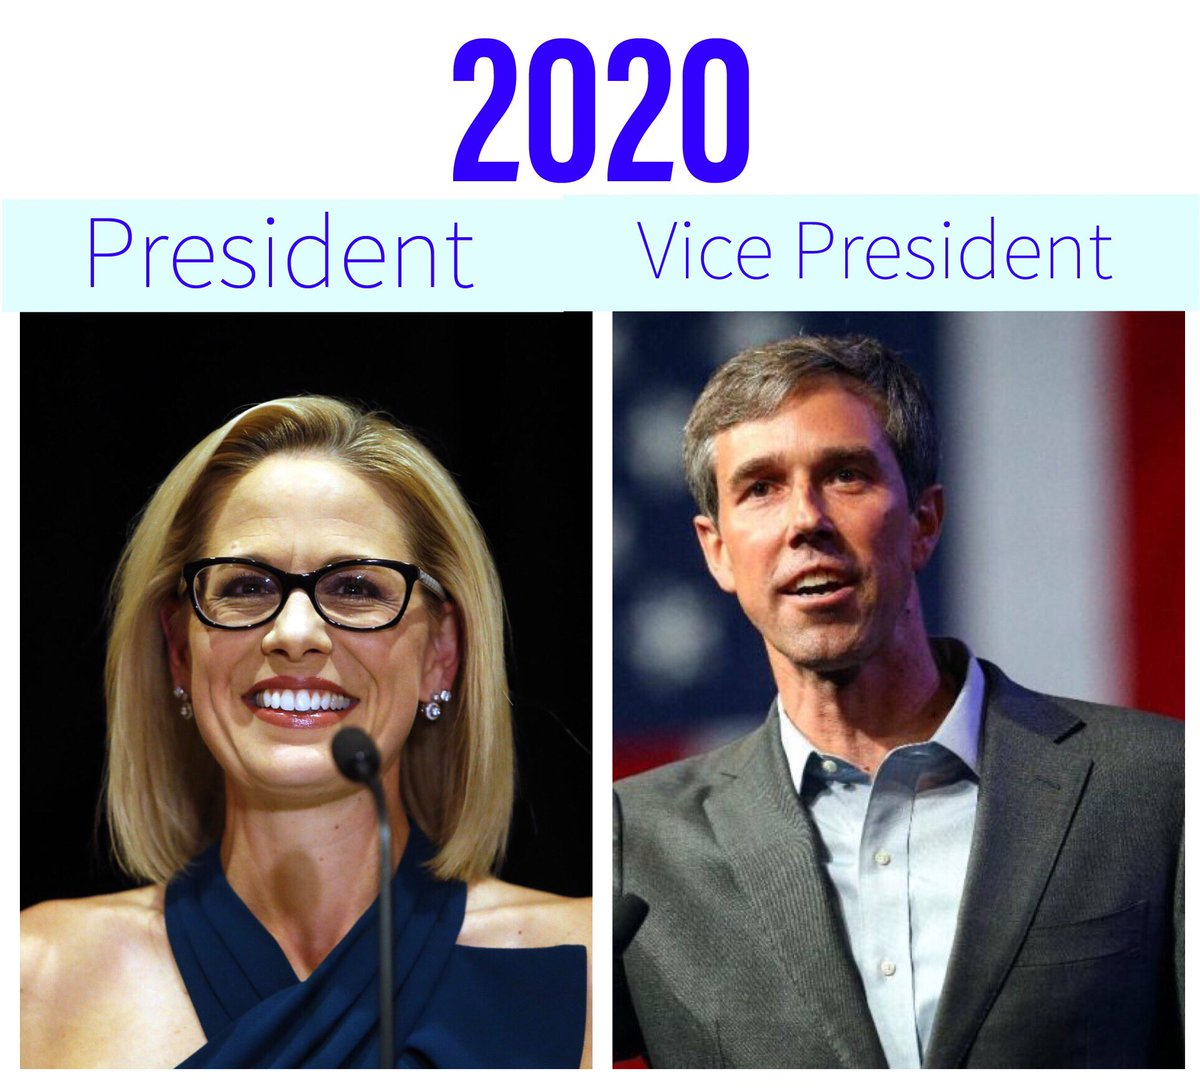 #FBR #KrystenSinema is wicked smart, originally member of the Green Party, and openly bisexual. #BetoOrourke #2020electioncountdown<br>http://pic.twitter.com/Qs7O9zQyov